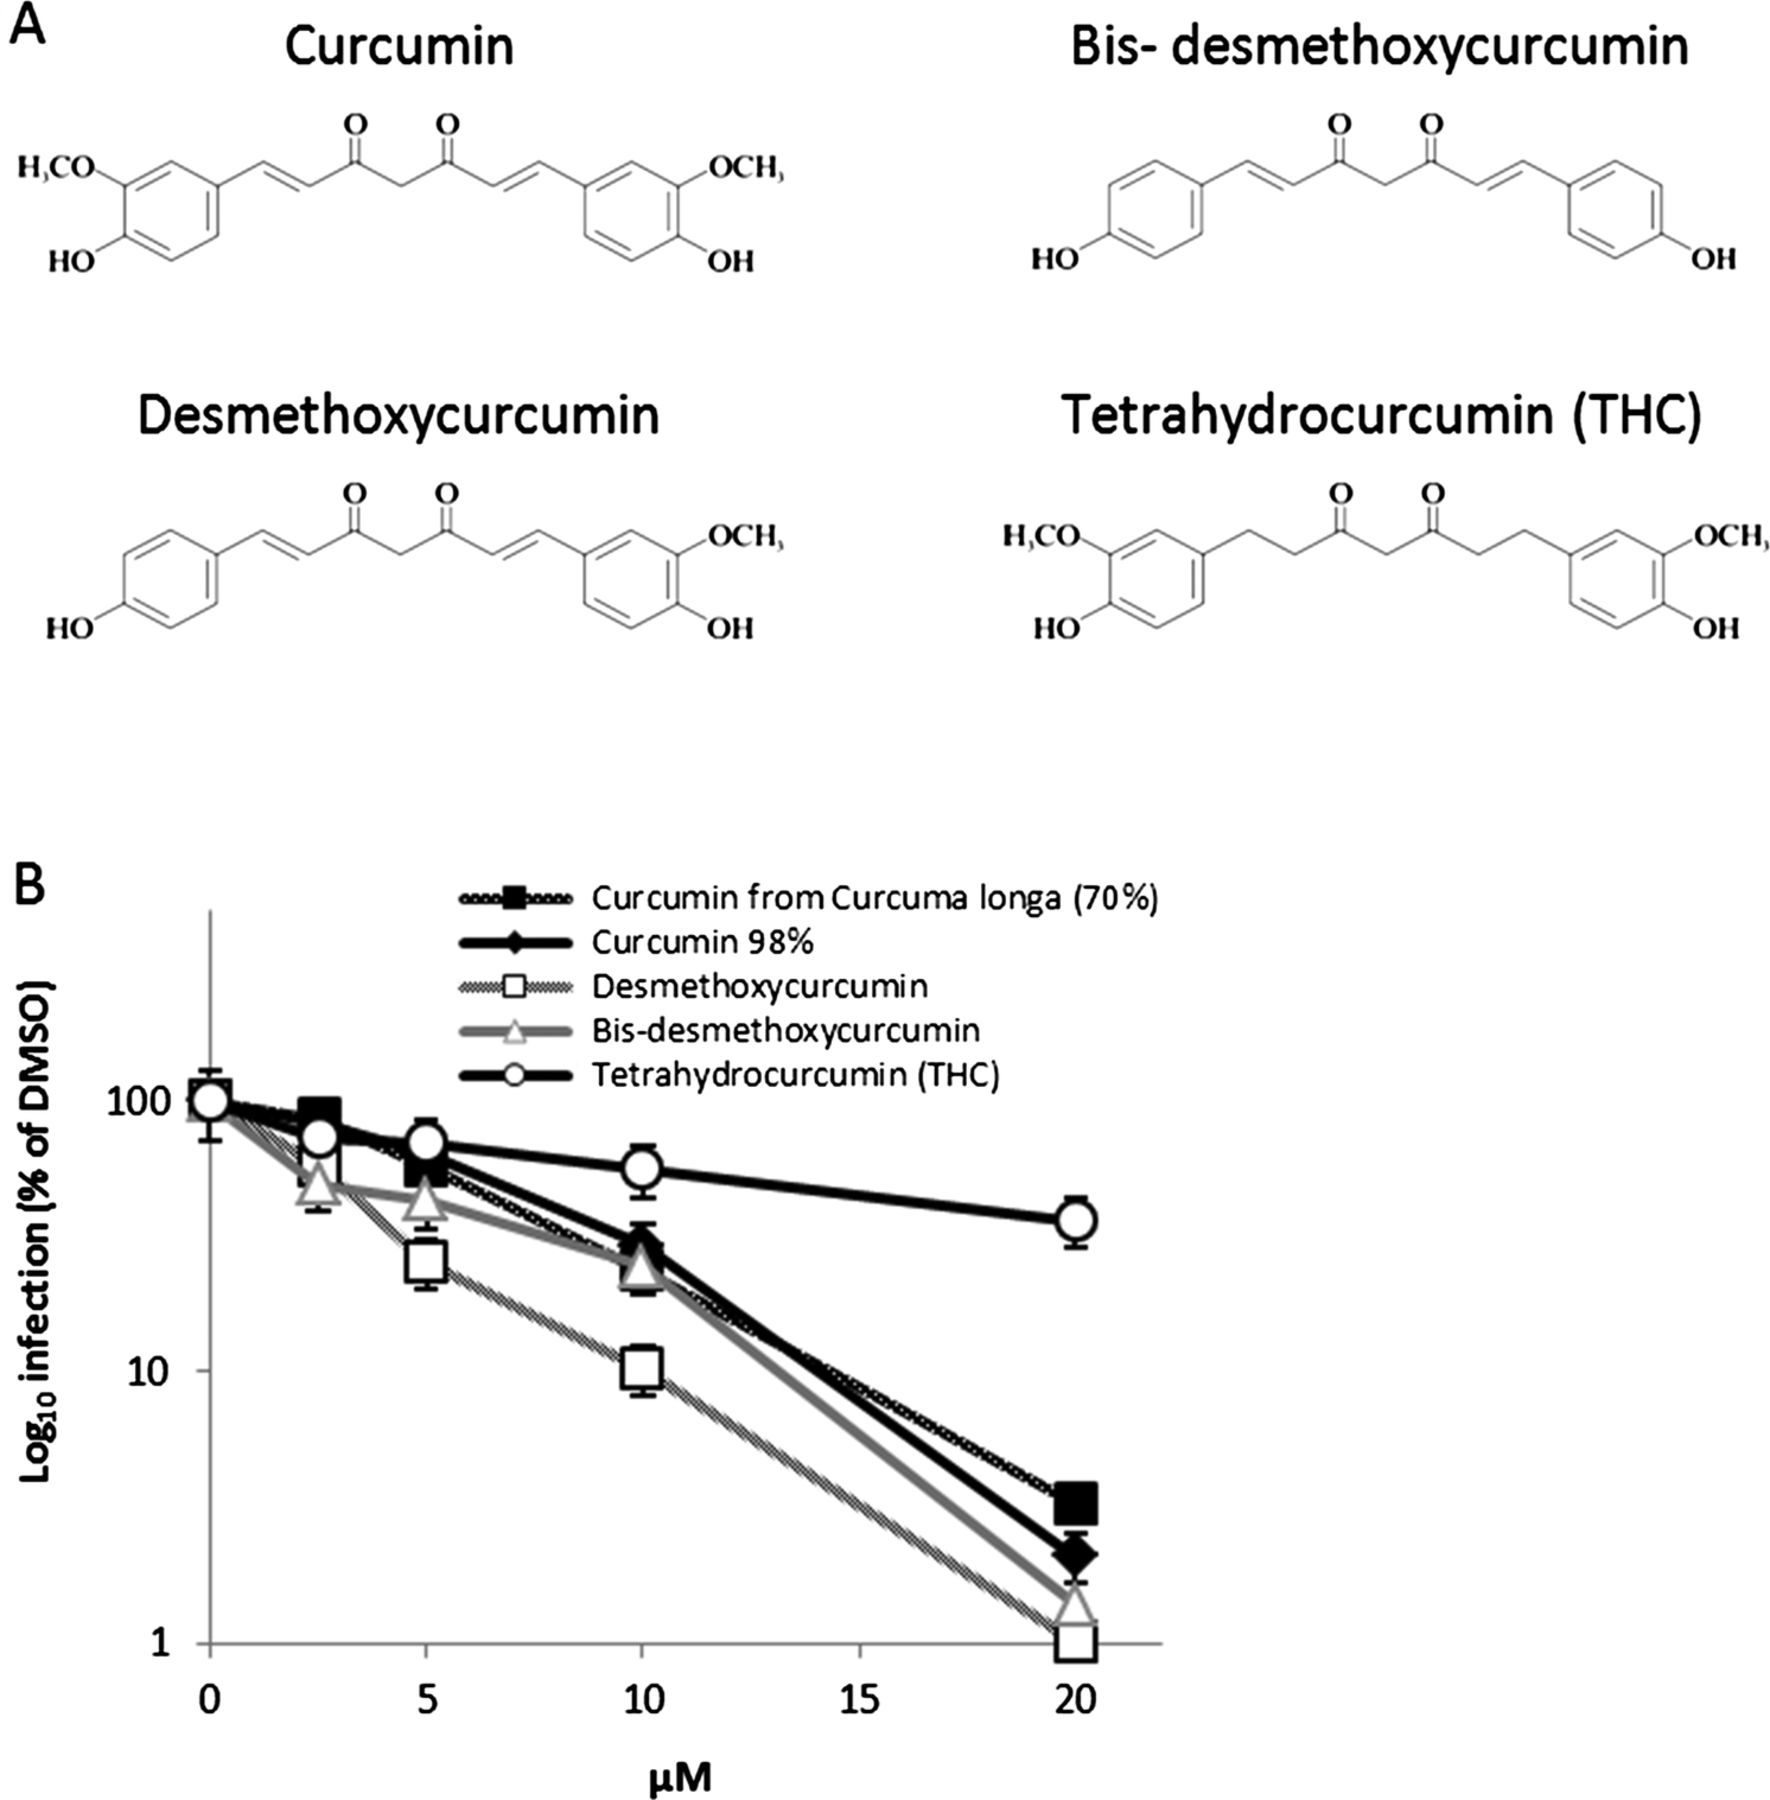 Turmeric curcumin inhibits entry of all hepatitis C virus